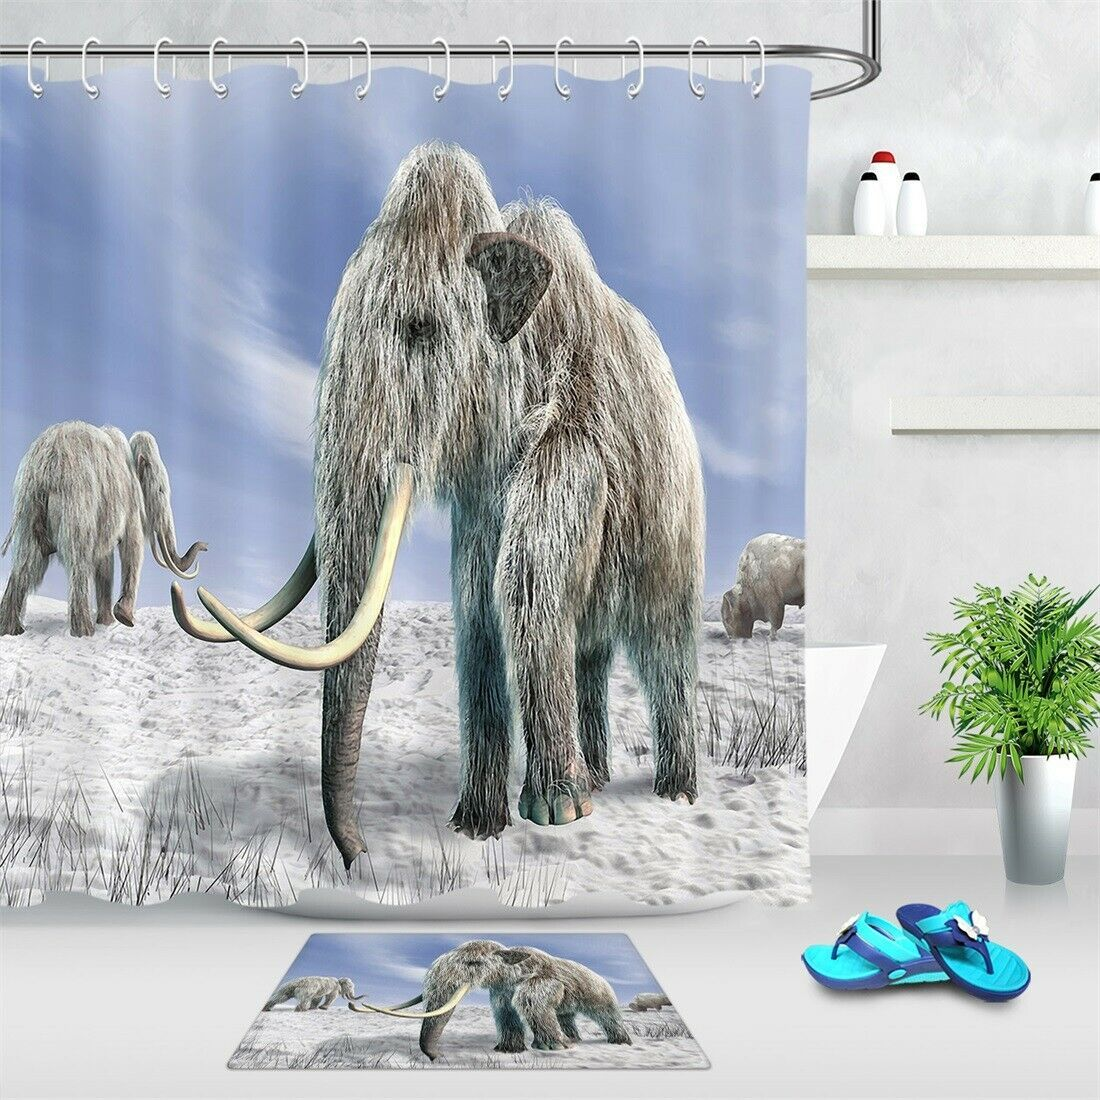 Elephant Mother and Child Shower Curtain Bathroom Decor Fabric /& 12hooks 71x71in